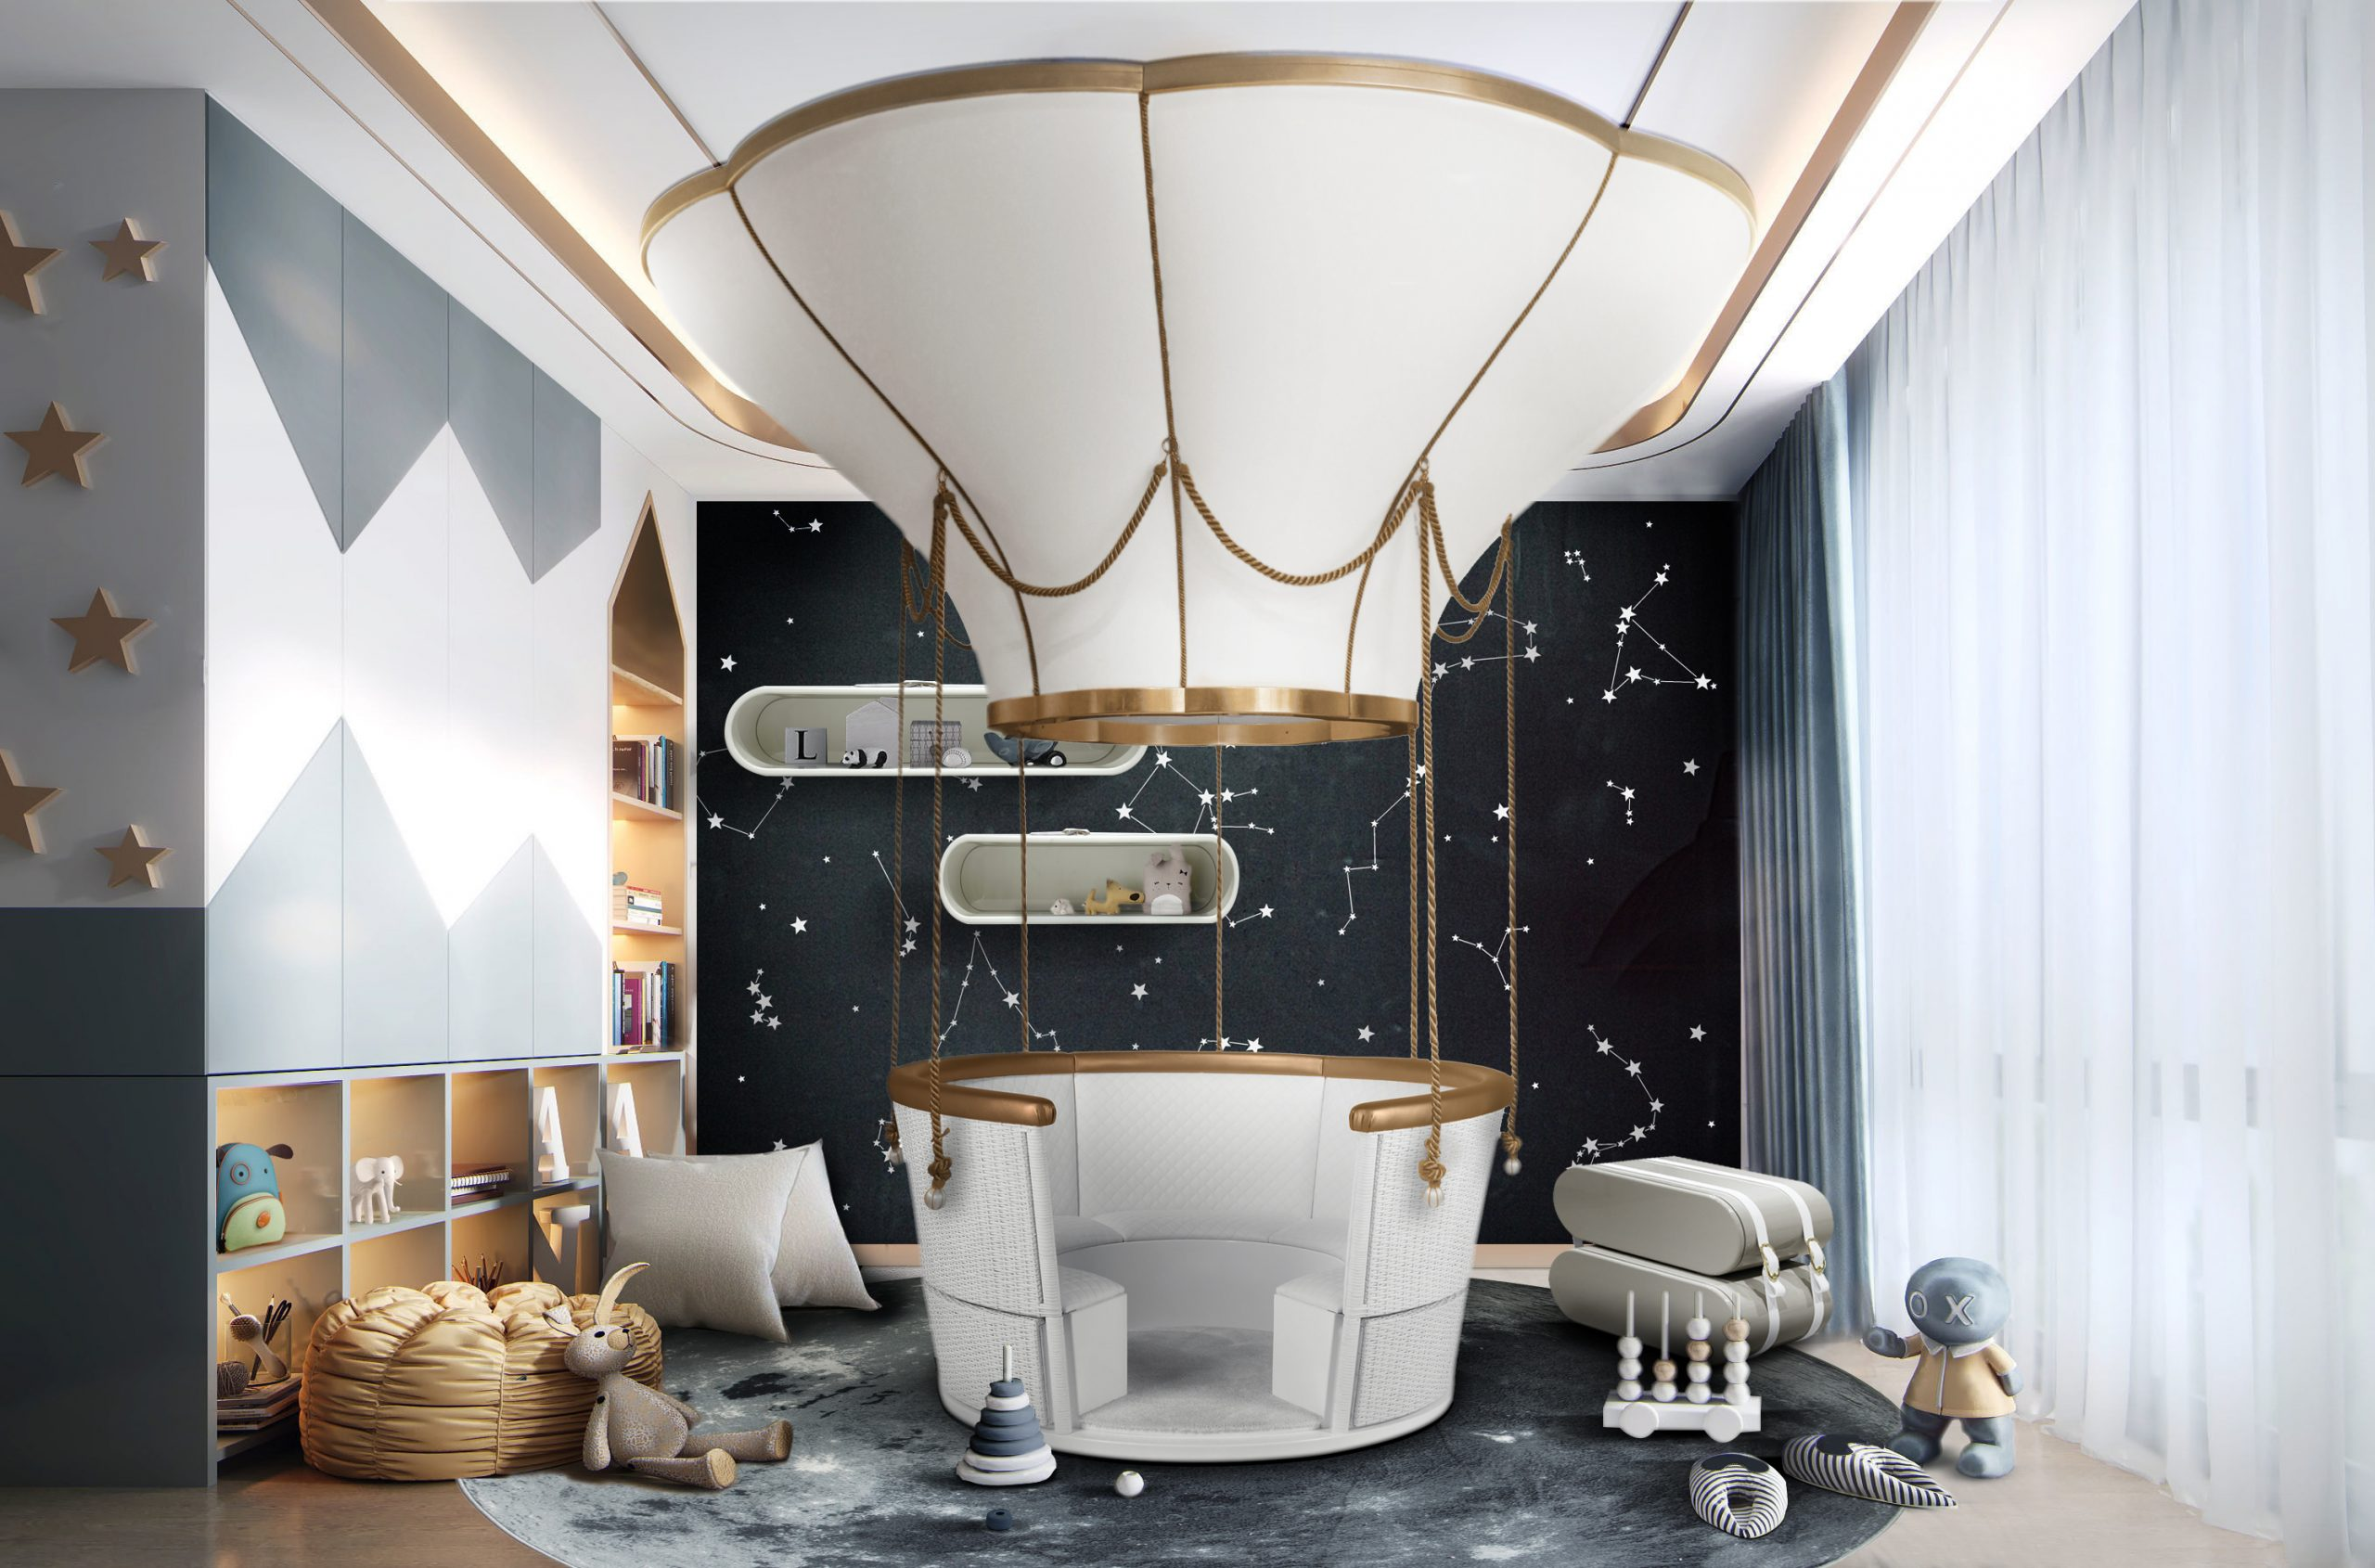 contemplate Contemplate These Exquisite Kid´s Bedroom Design Ideas Be Inspired By These Wonderful Ambiances For Your Kid  s Bedroom7